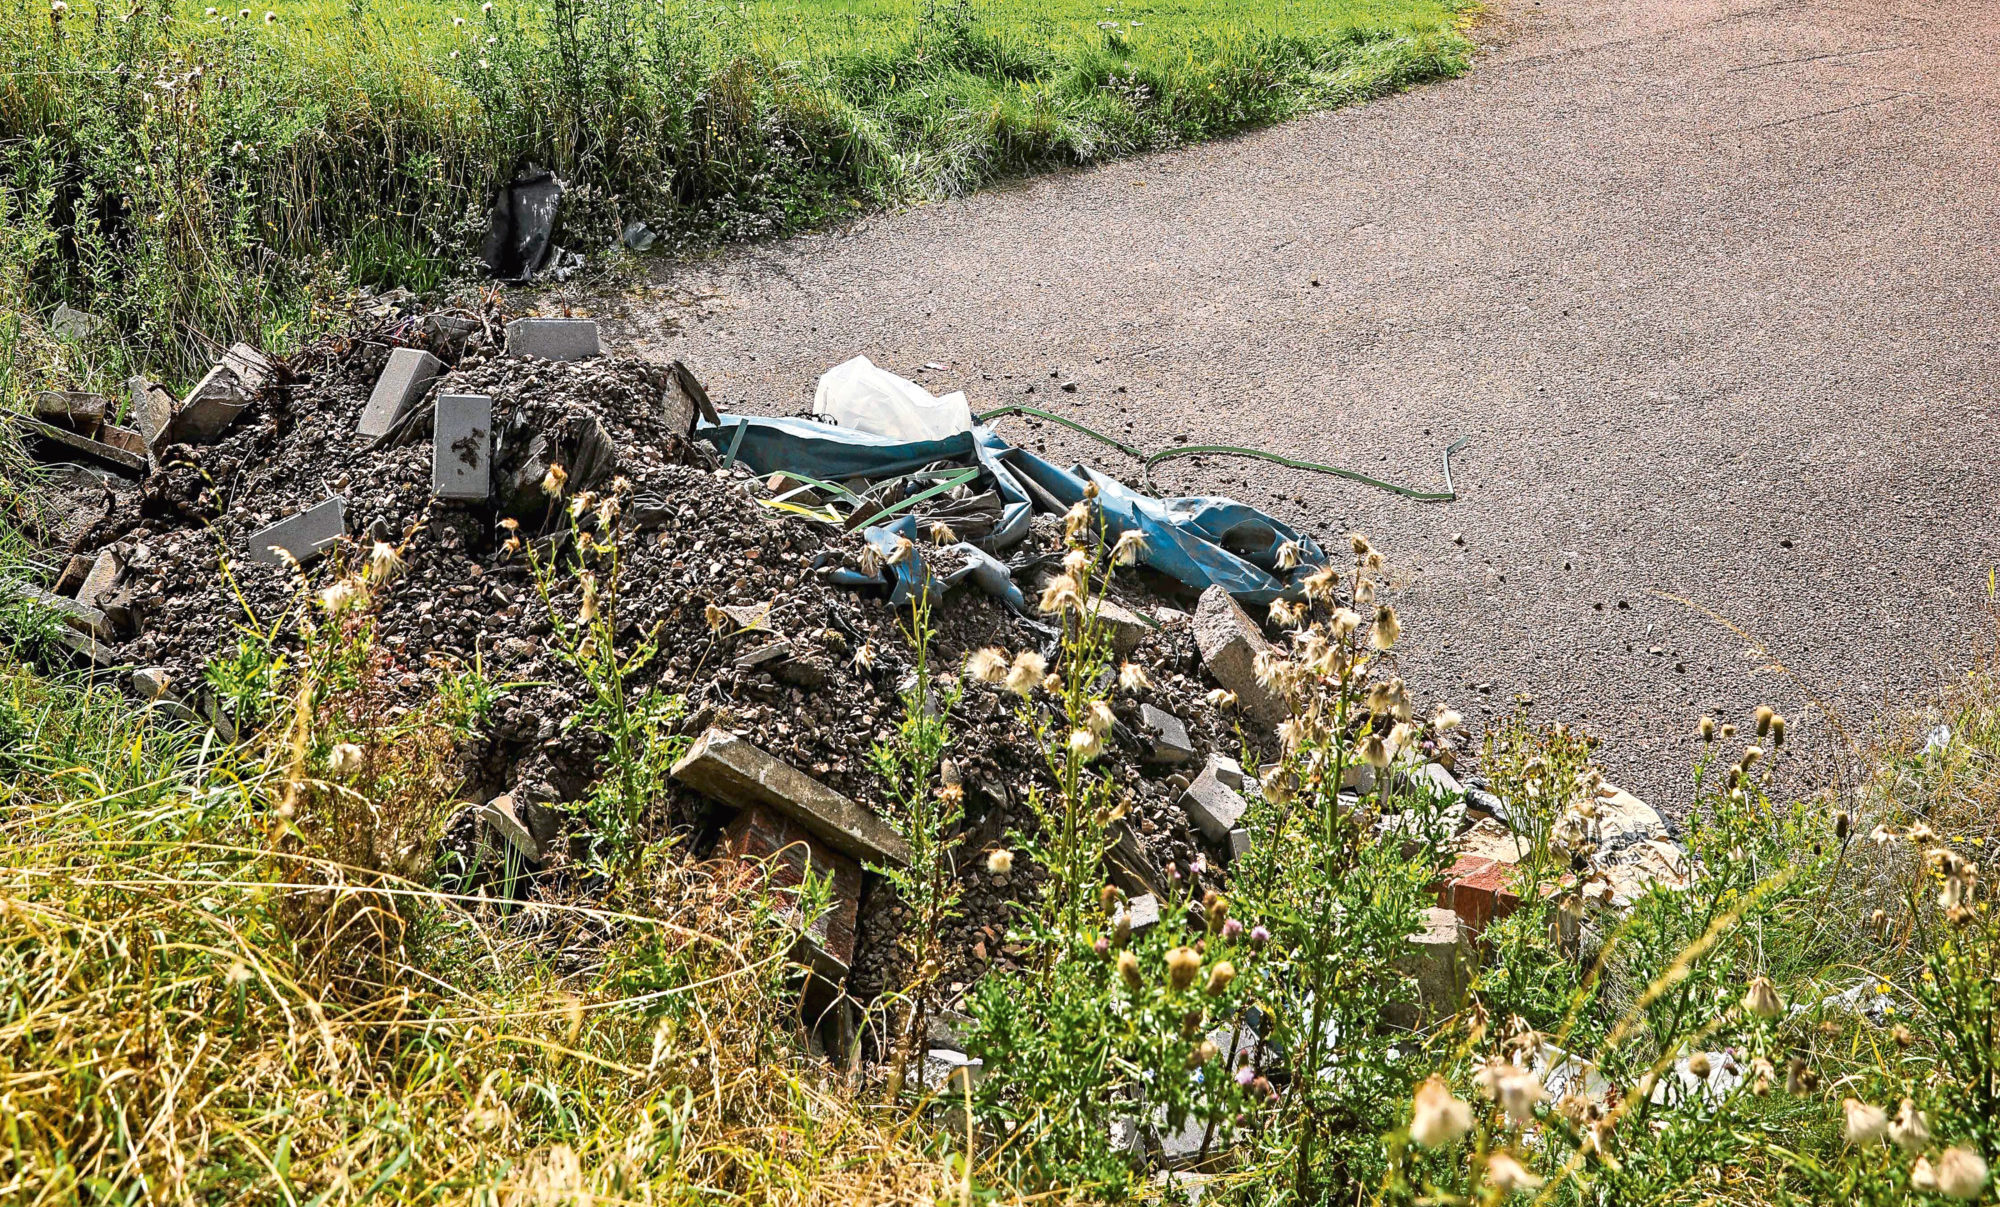 It is hoped the fund will help stop fly-tipping